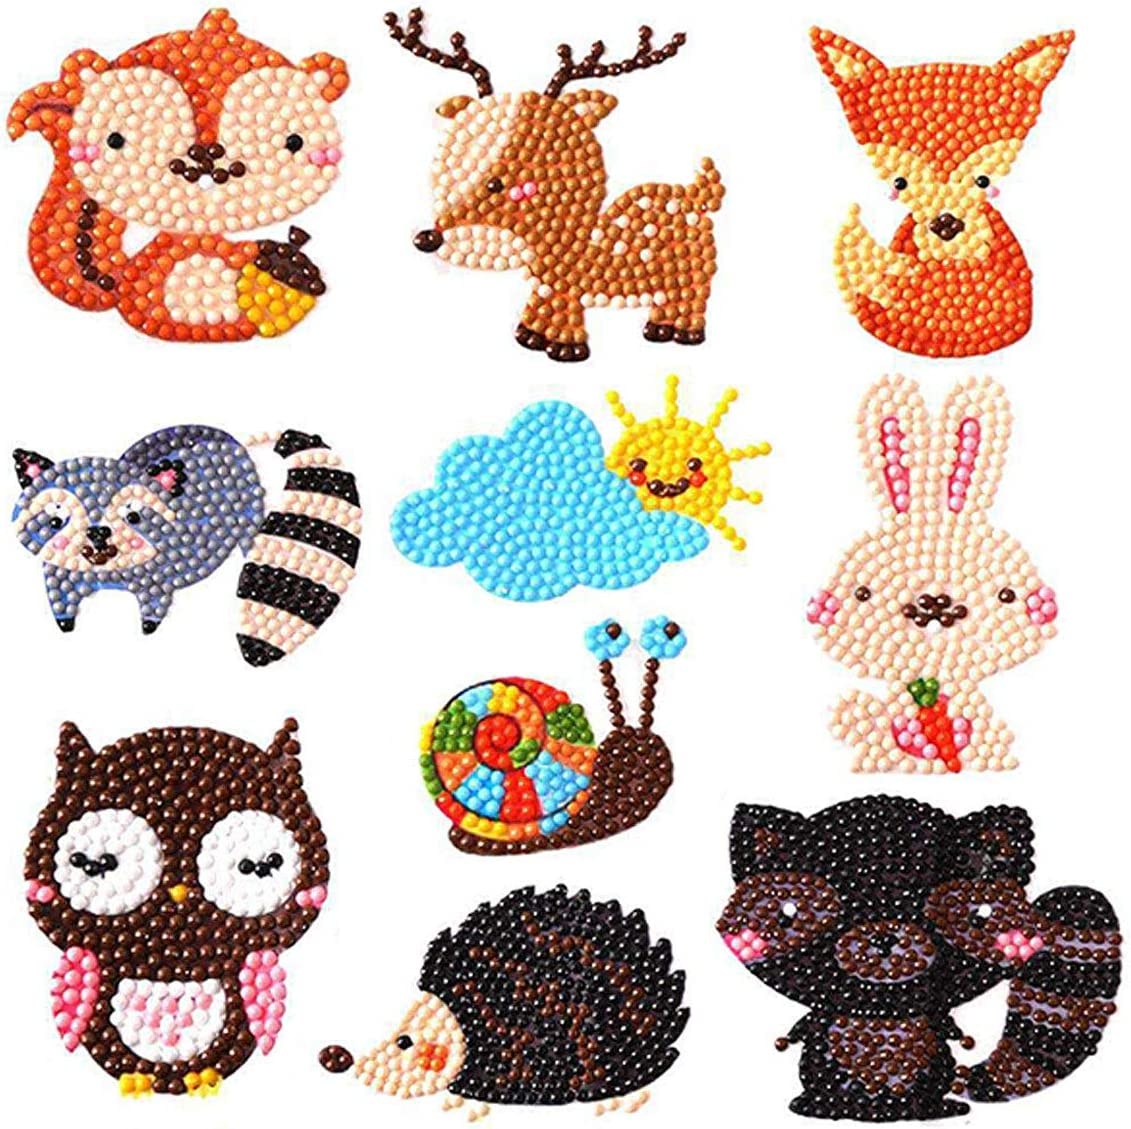 Yegrape Diamond Painting Stickers Kits for Kids 37 Pieces 5D DIY Animal Diamond Art Mosaic Stickers by Numbers Kits Crafts Set for Children Boys and Girls